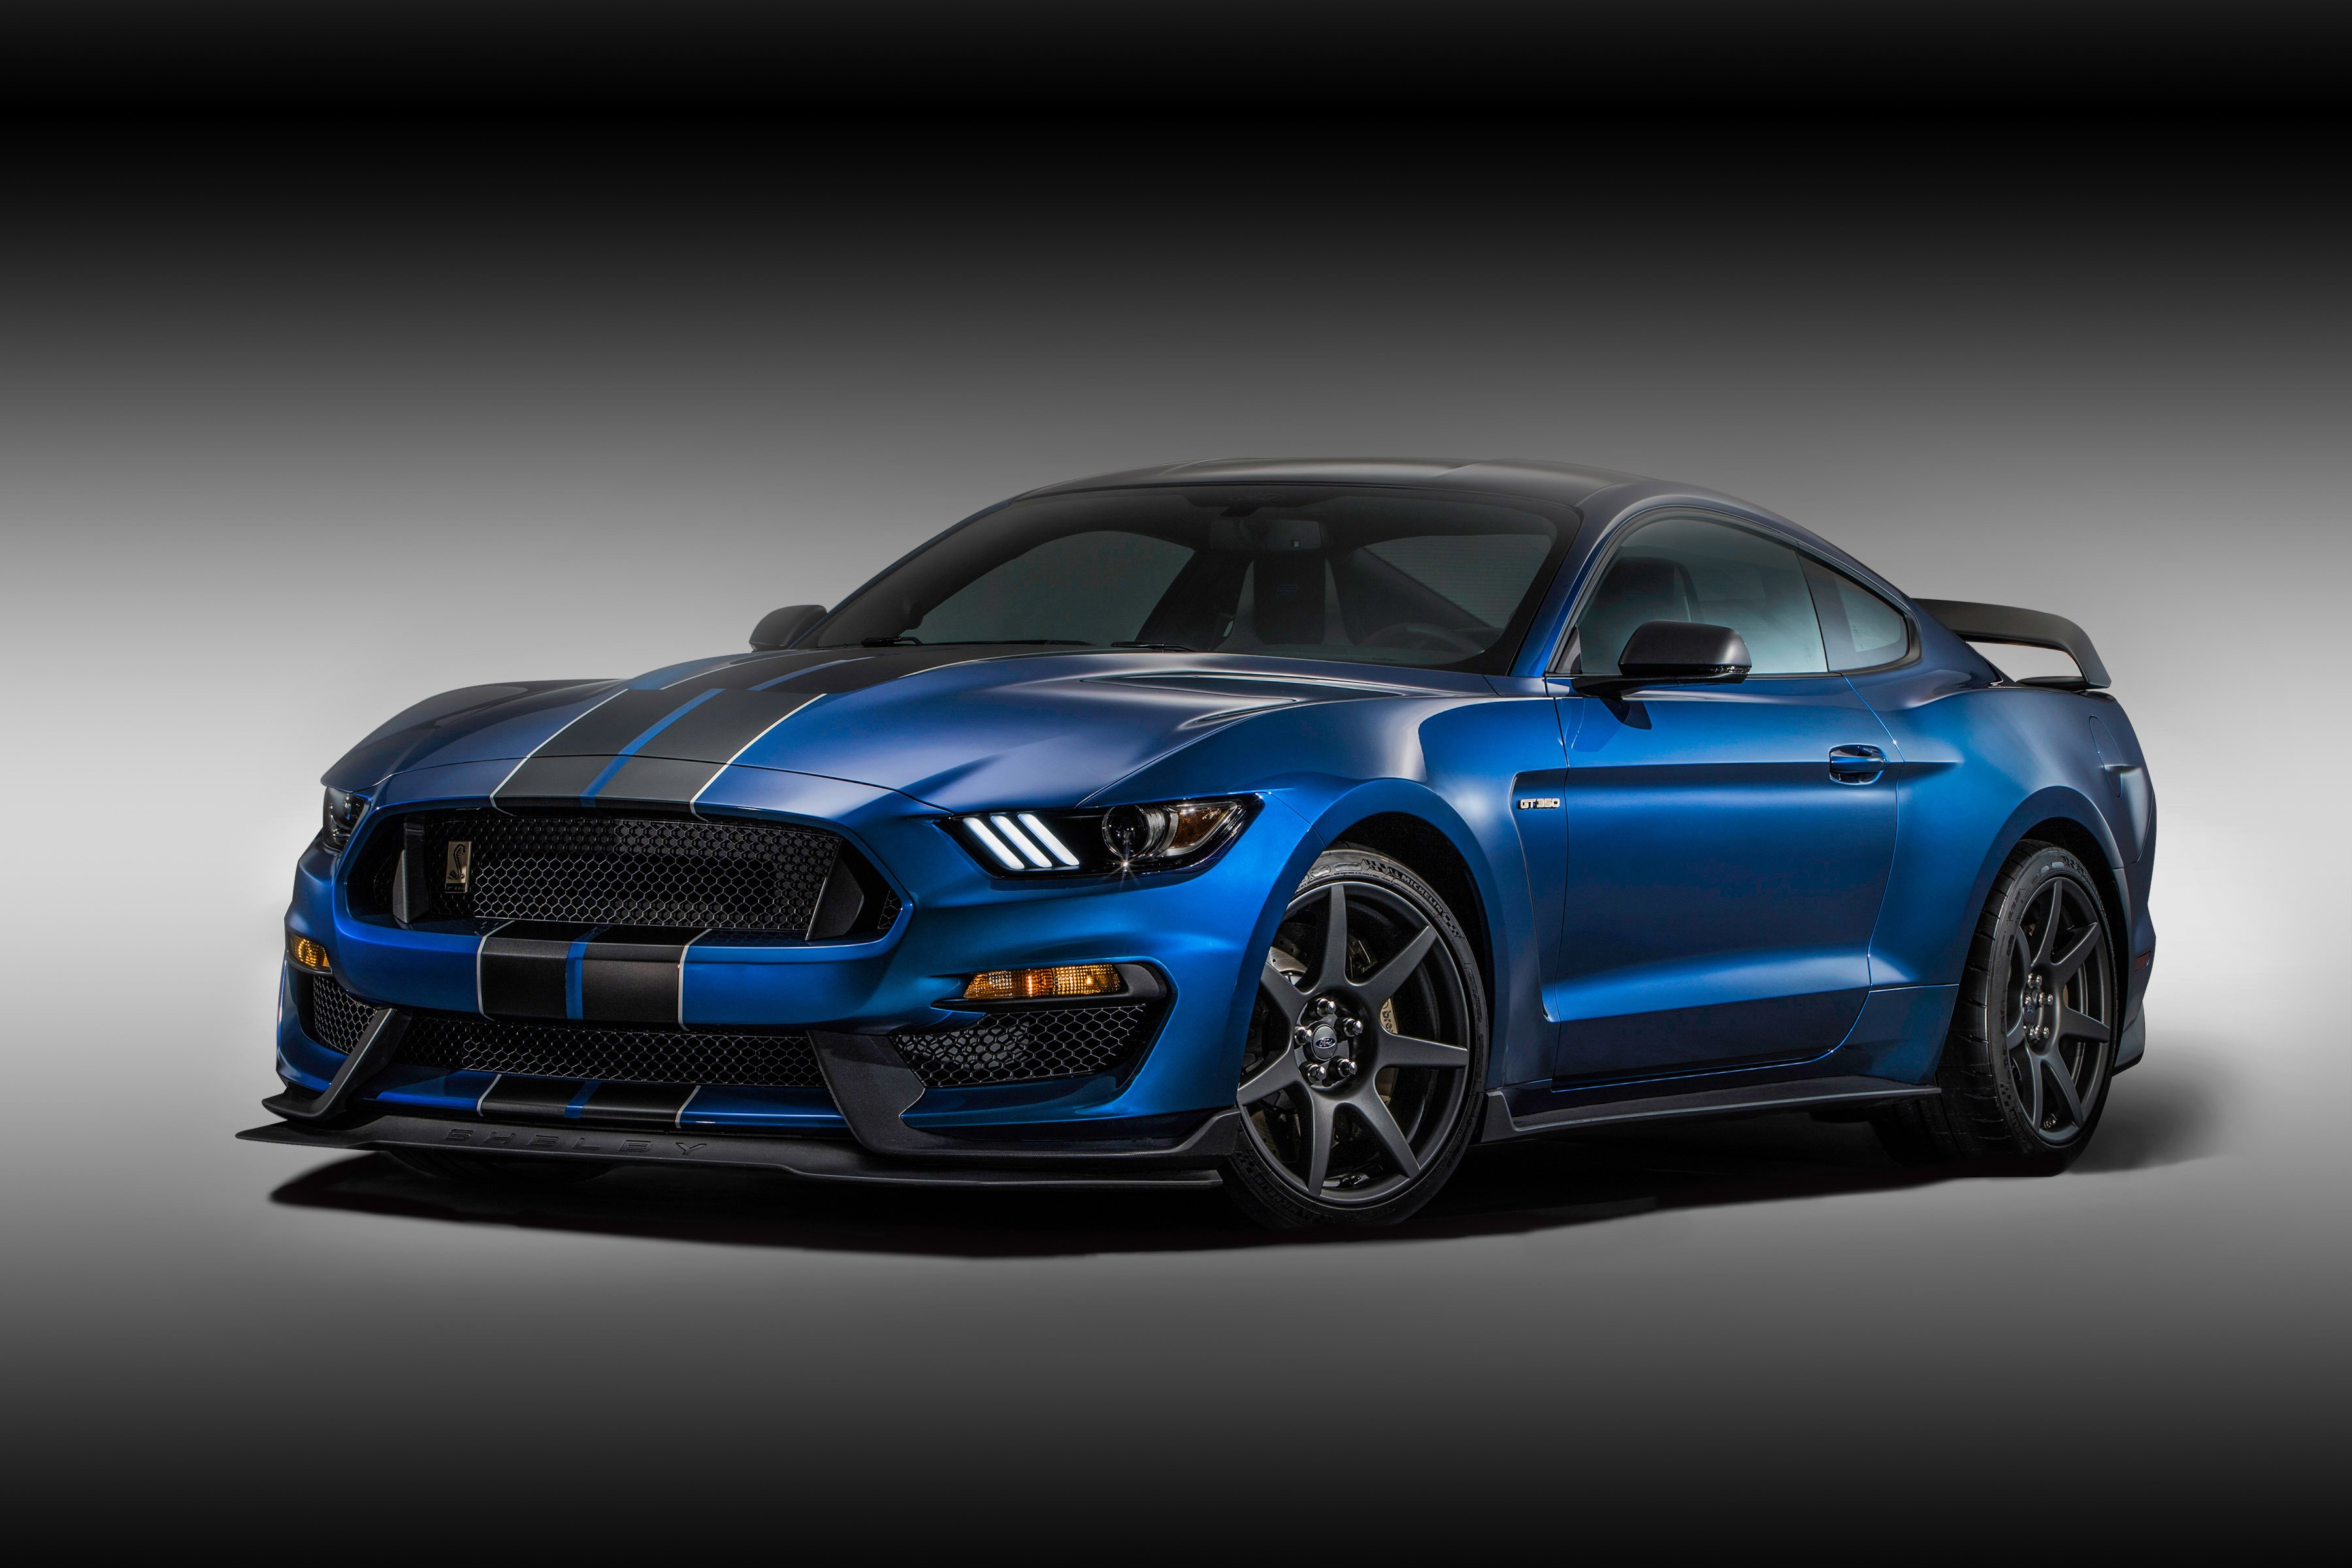 2016 shelby gt350r ford mustang muscle gt350 wallpaper 3600x2400 789960 wallpaperup